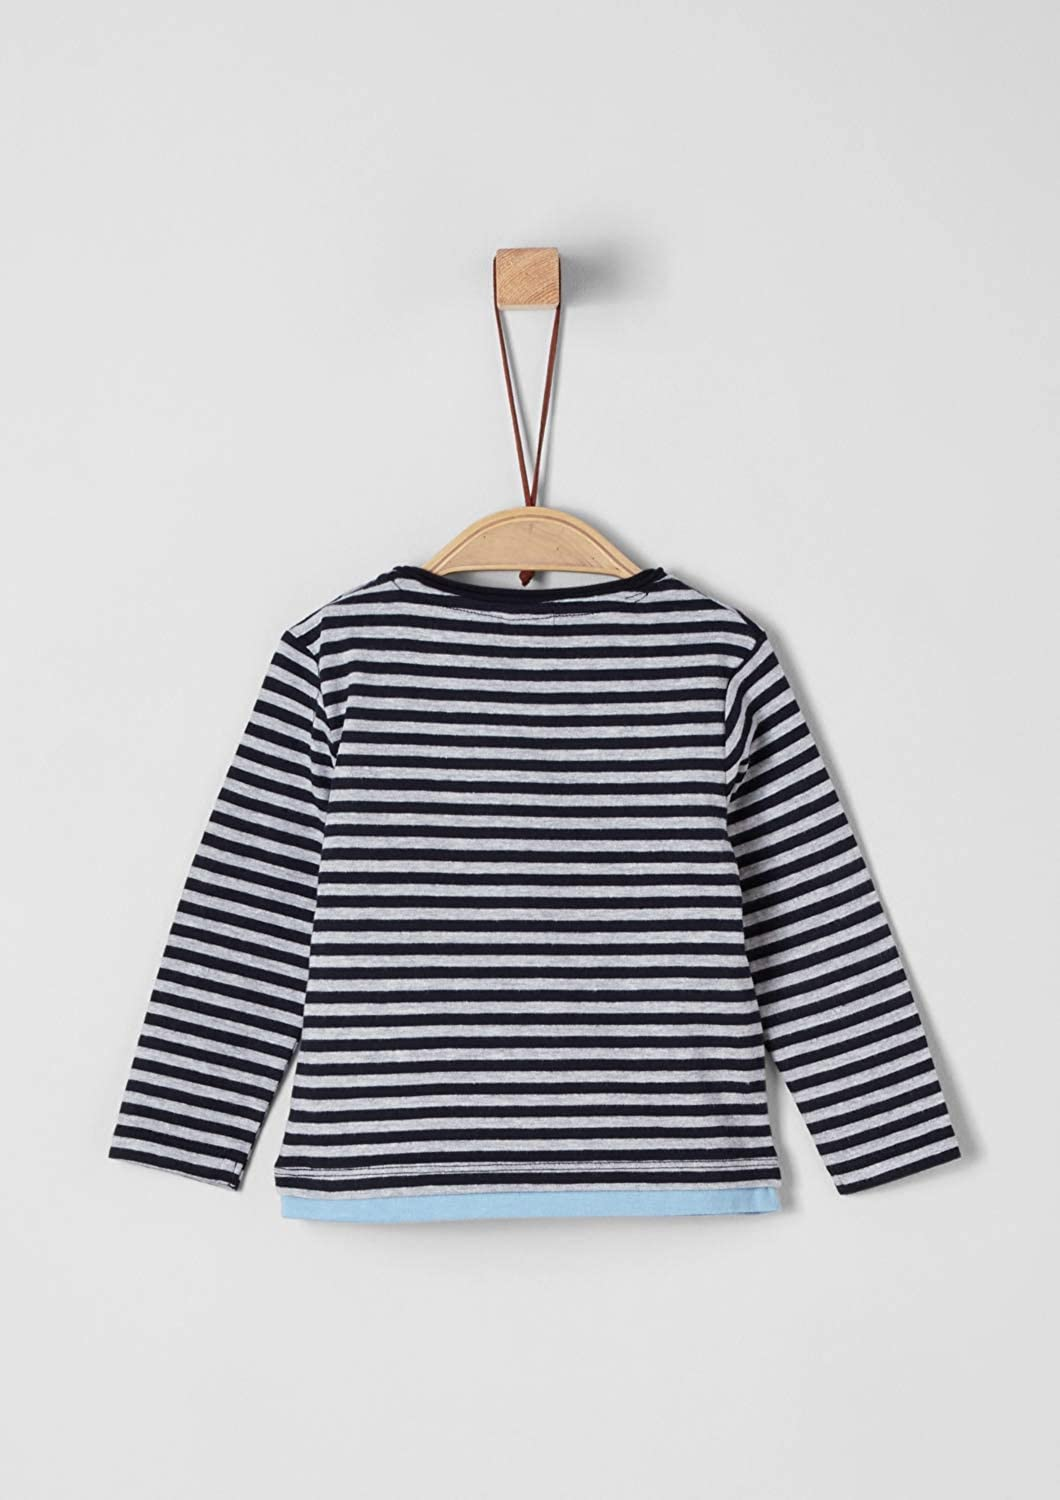 s.Oliver Baby Boys Long Sleeve Top